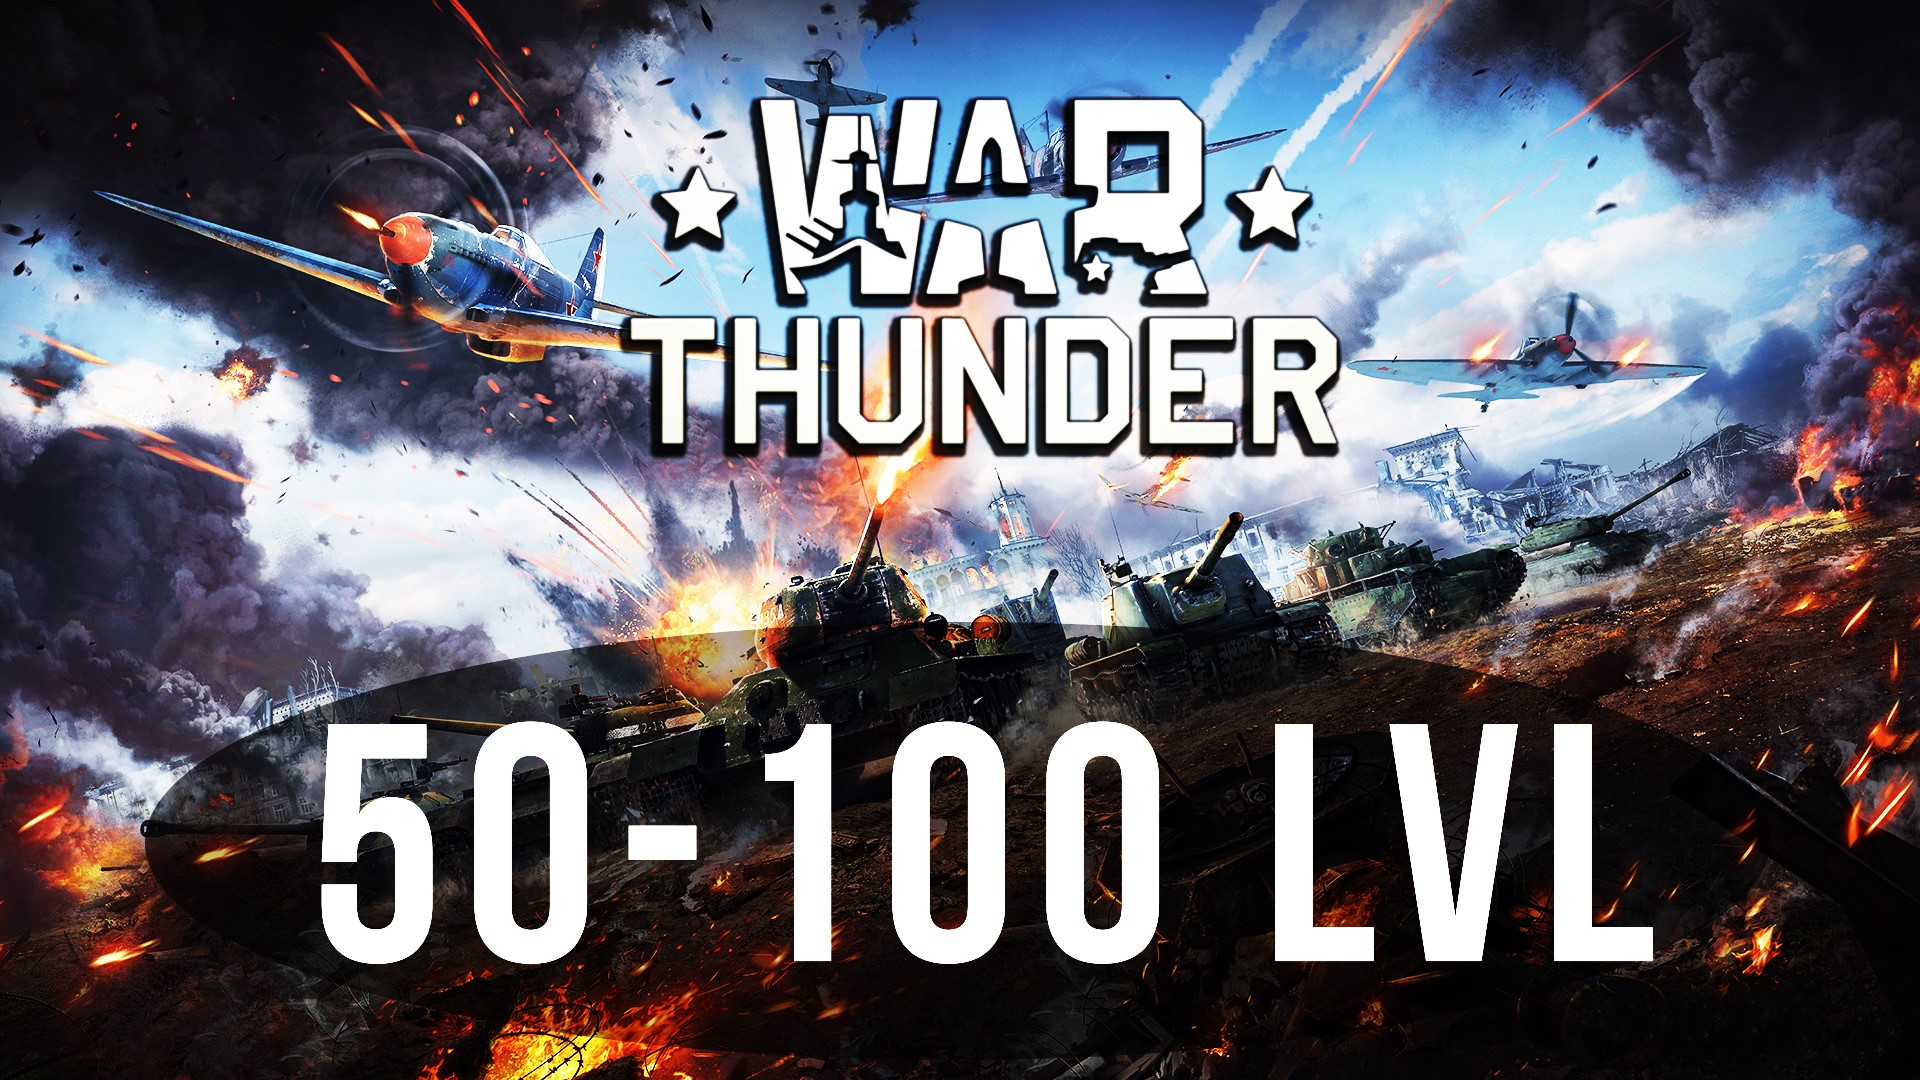 Account War Thunder [50-100 lvl]